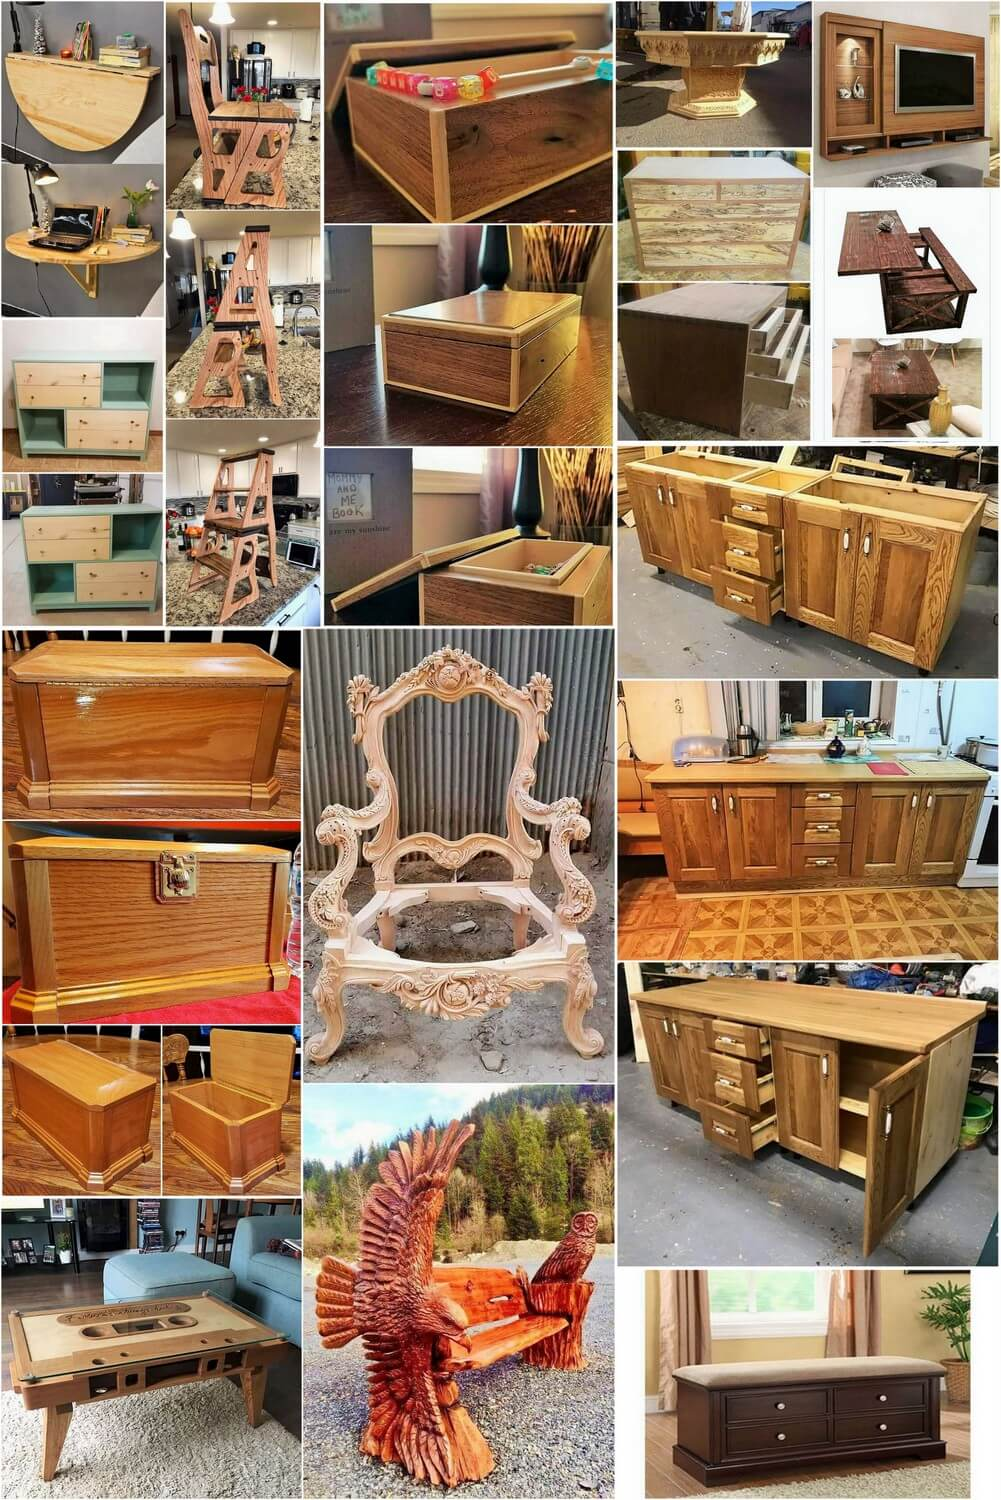 creative wooden furniture. The Furniture That You Have In Home Counts A Lot So Make Sure Best Of It. Here Are Some Creative Ideas For Making Wooden